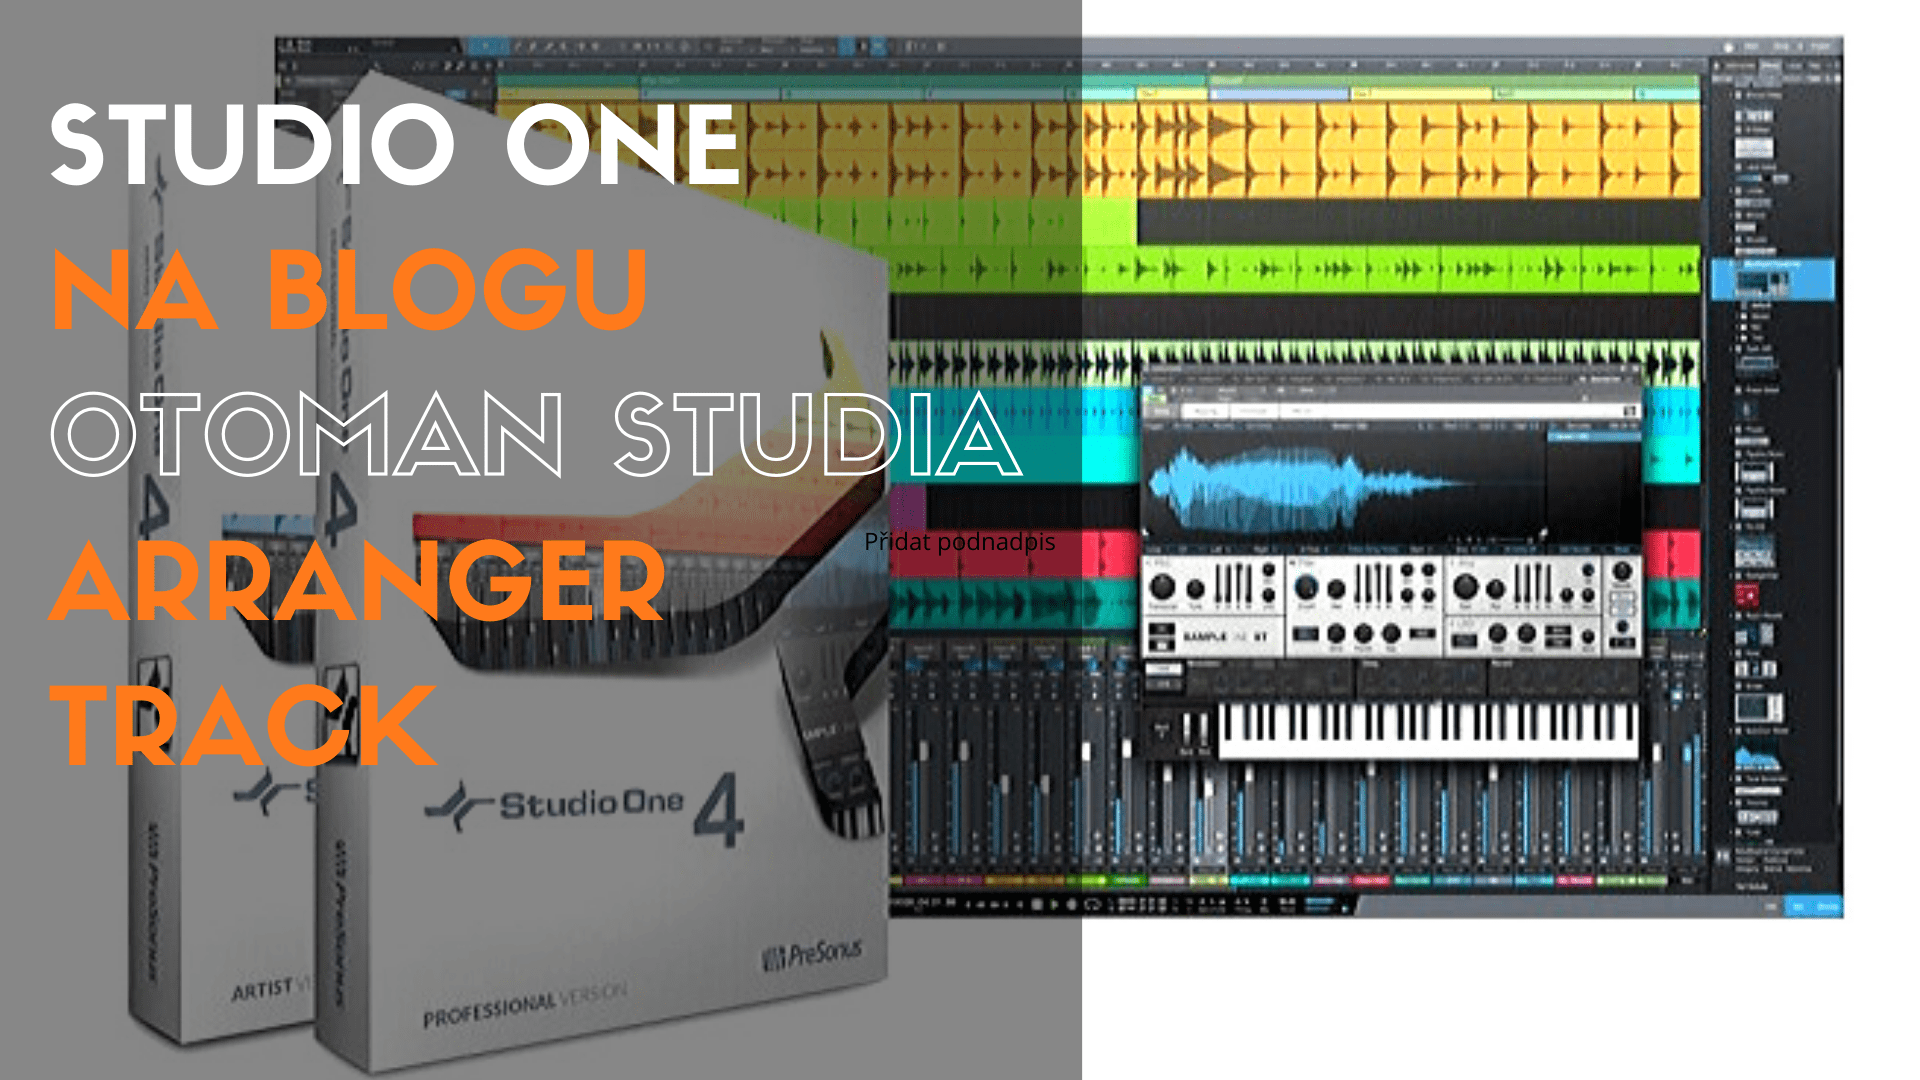 Studio One – Arranger track